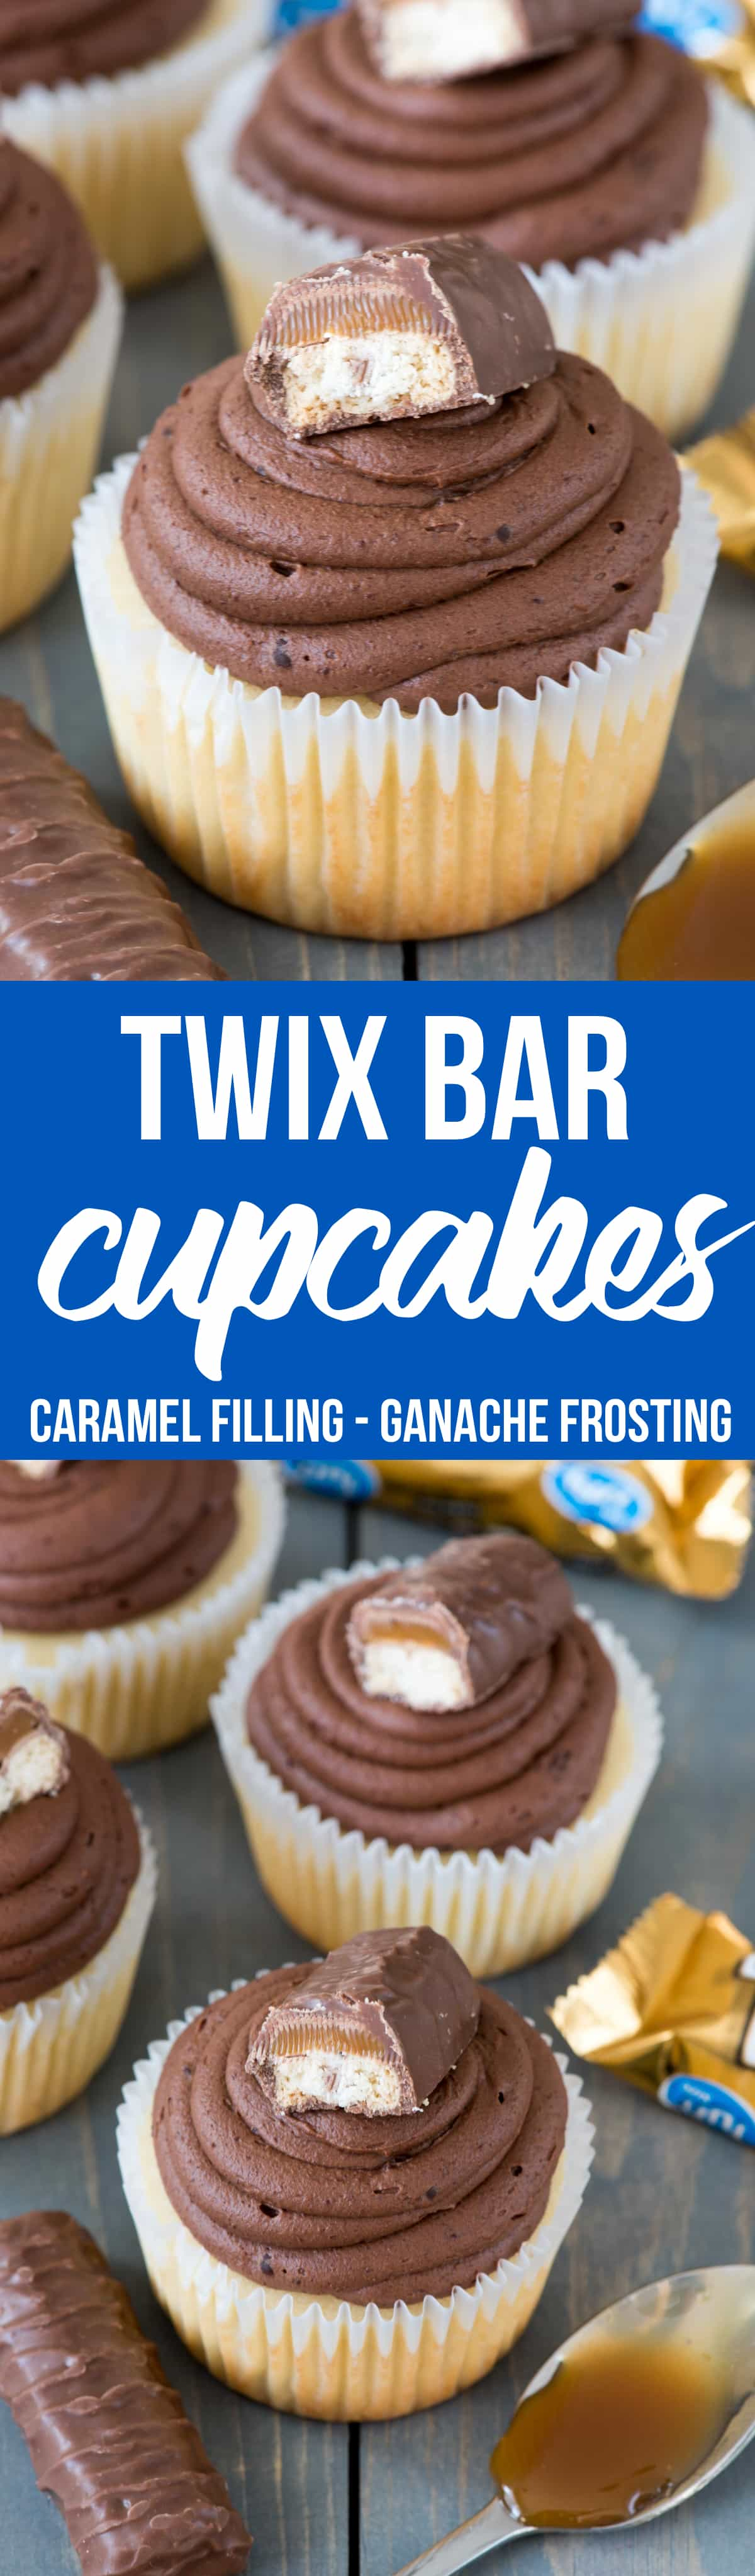 Easiest ever TWIX Cupcakes! This easy cupcake recipe fills vanilla cupcakes with caramel and tops them with a chocolate ganache frosting like a Twix Candy Bar!